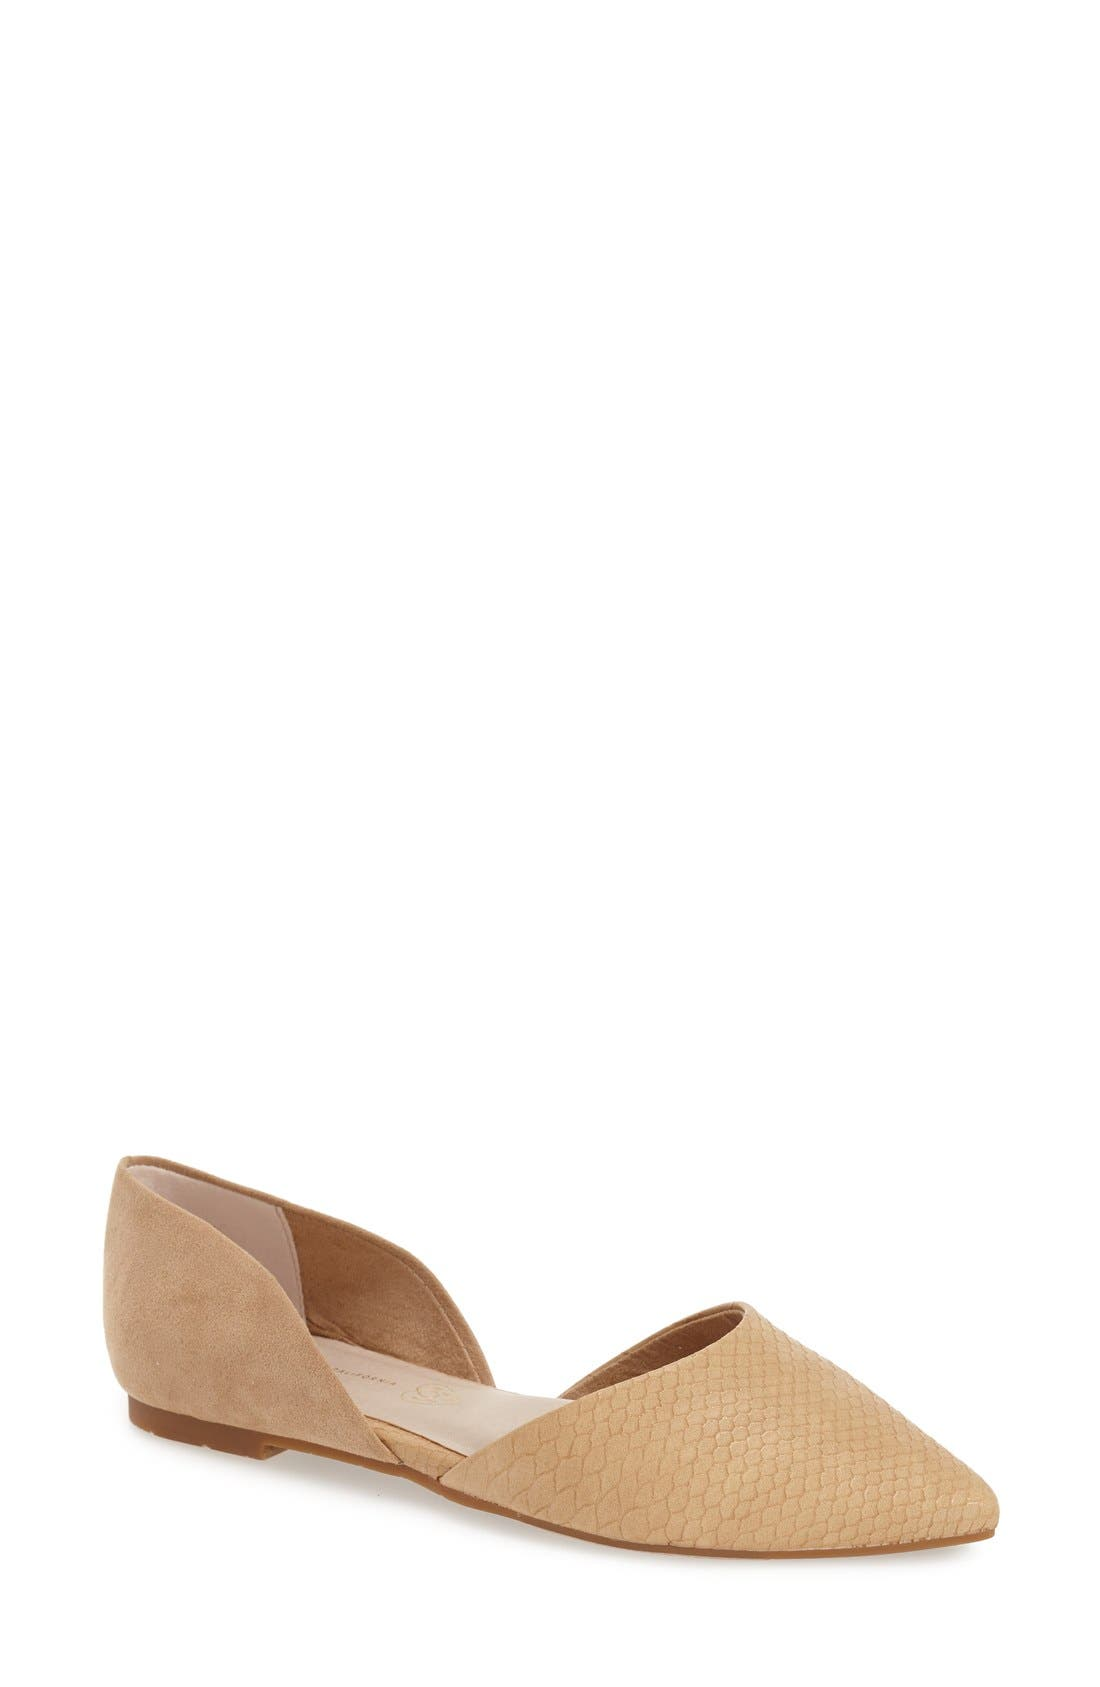 Alternate Image 1 Selected - BC Footwear 'Society' d'Orsay Flat (Women)